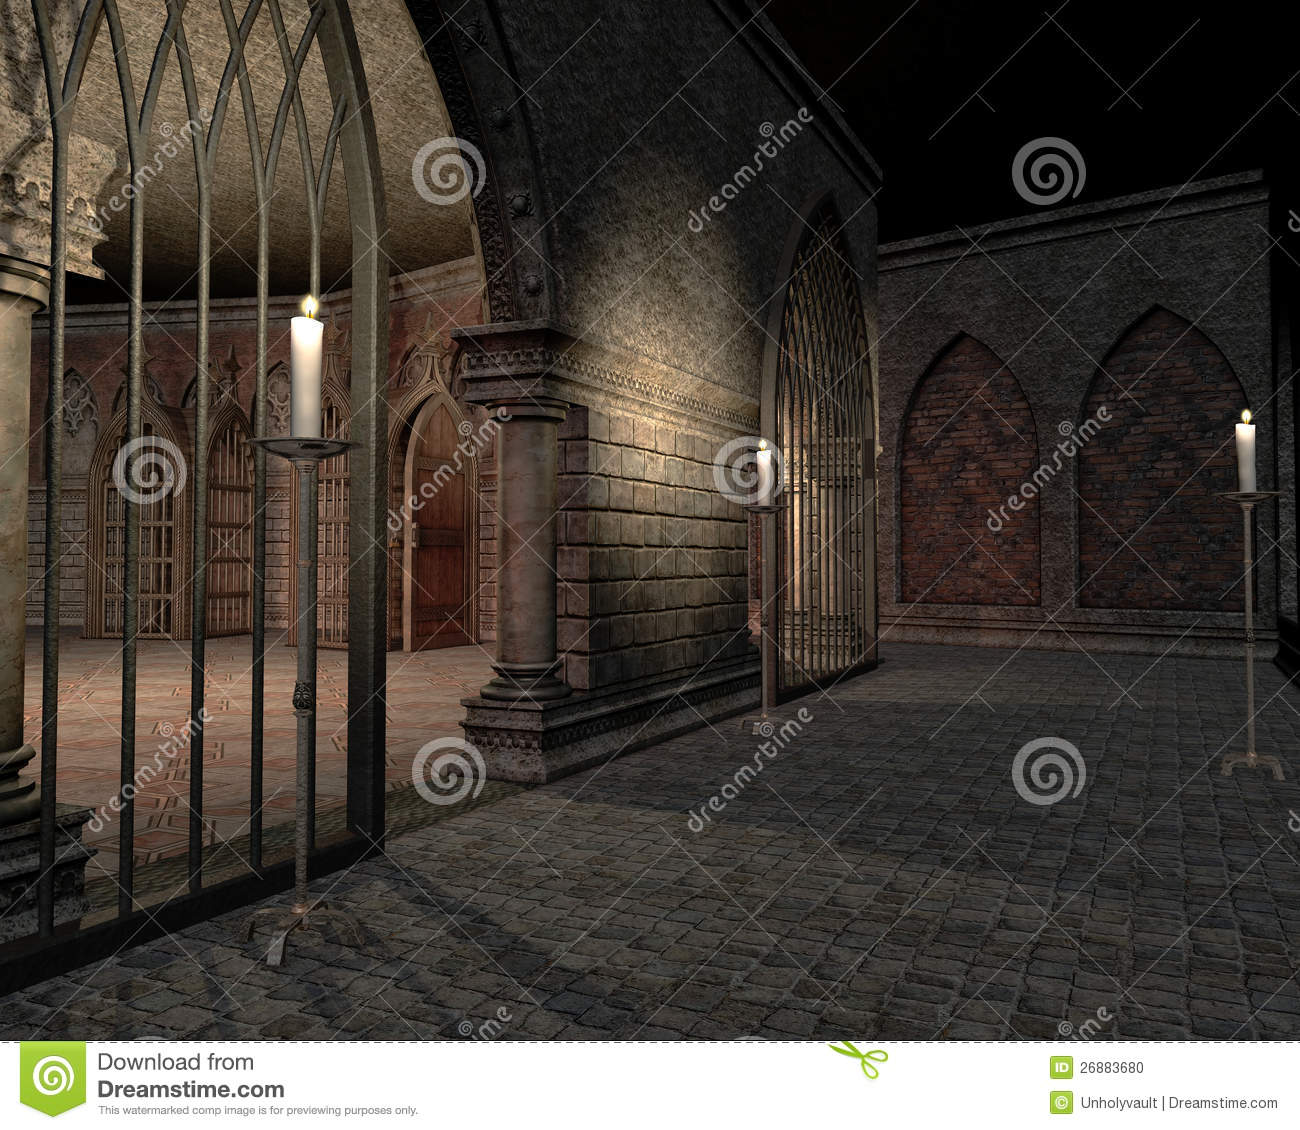 Dungeon clipart 5 » Clipart Station.